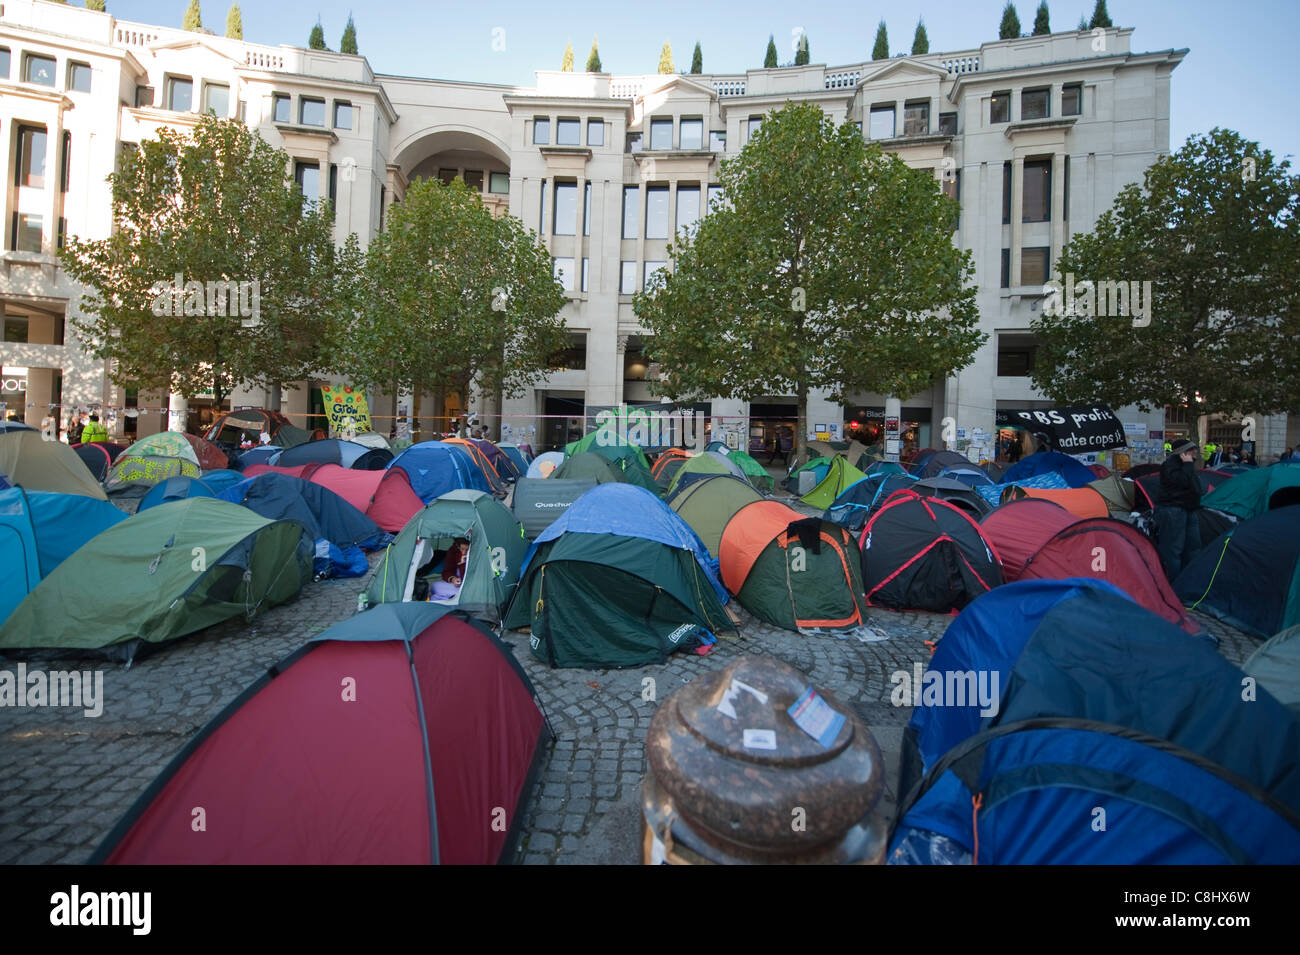 Anti capitalist protest camp outside St Paul's Cathedral in the City of London, UK, on Tuesday, 25th October, - Stock Image